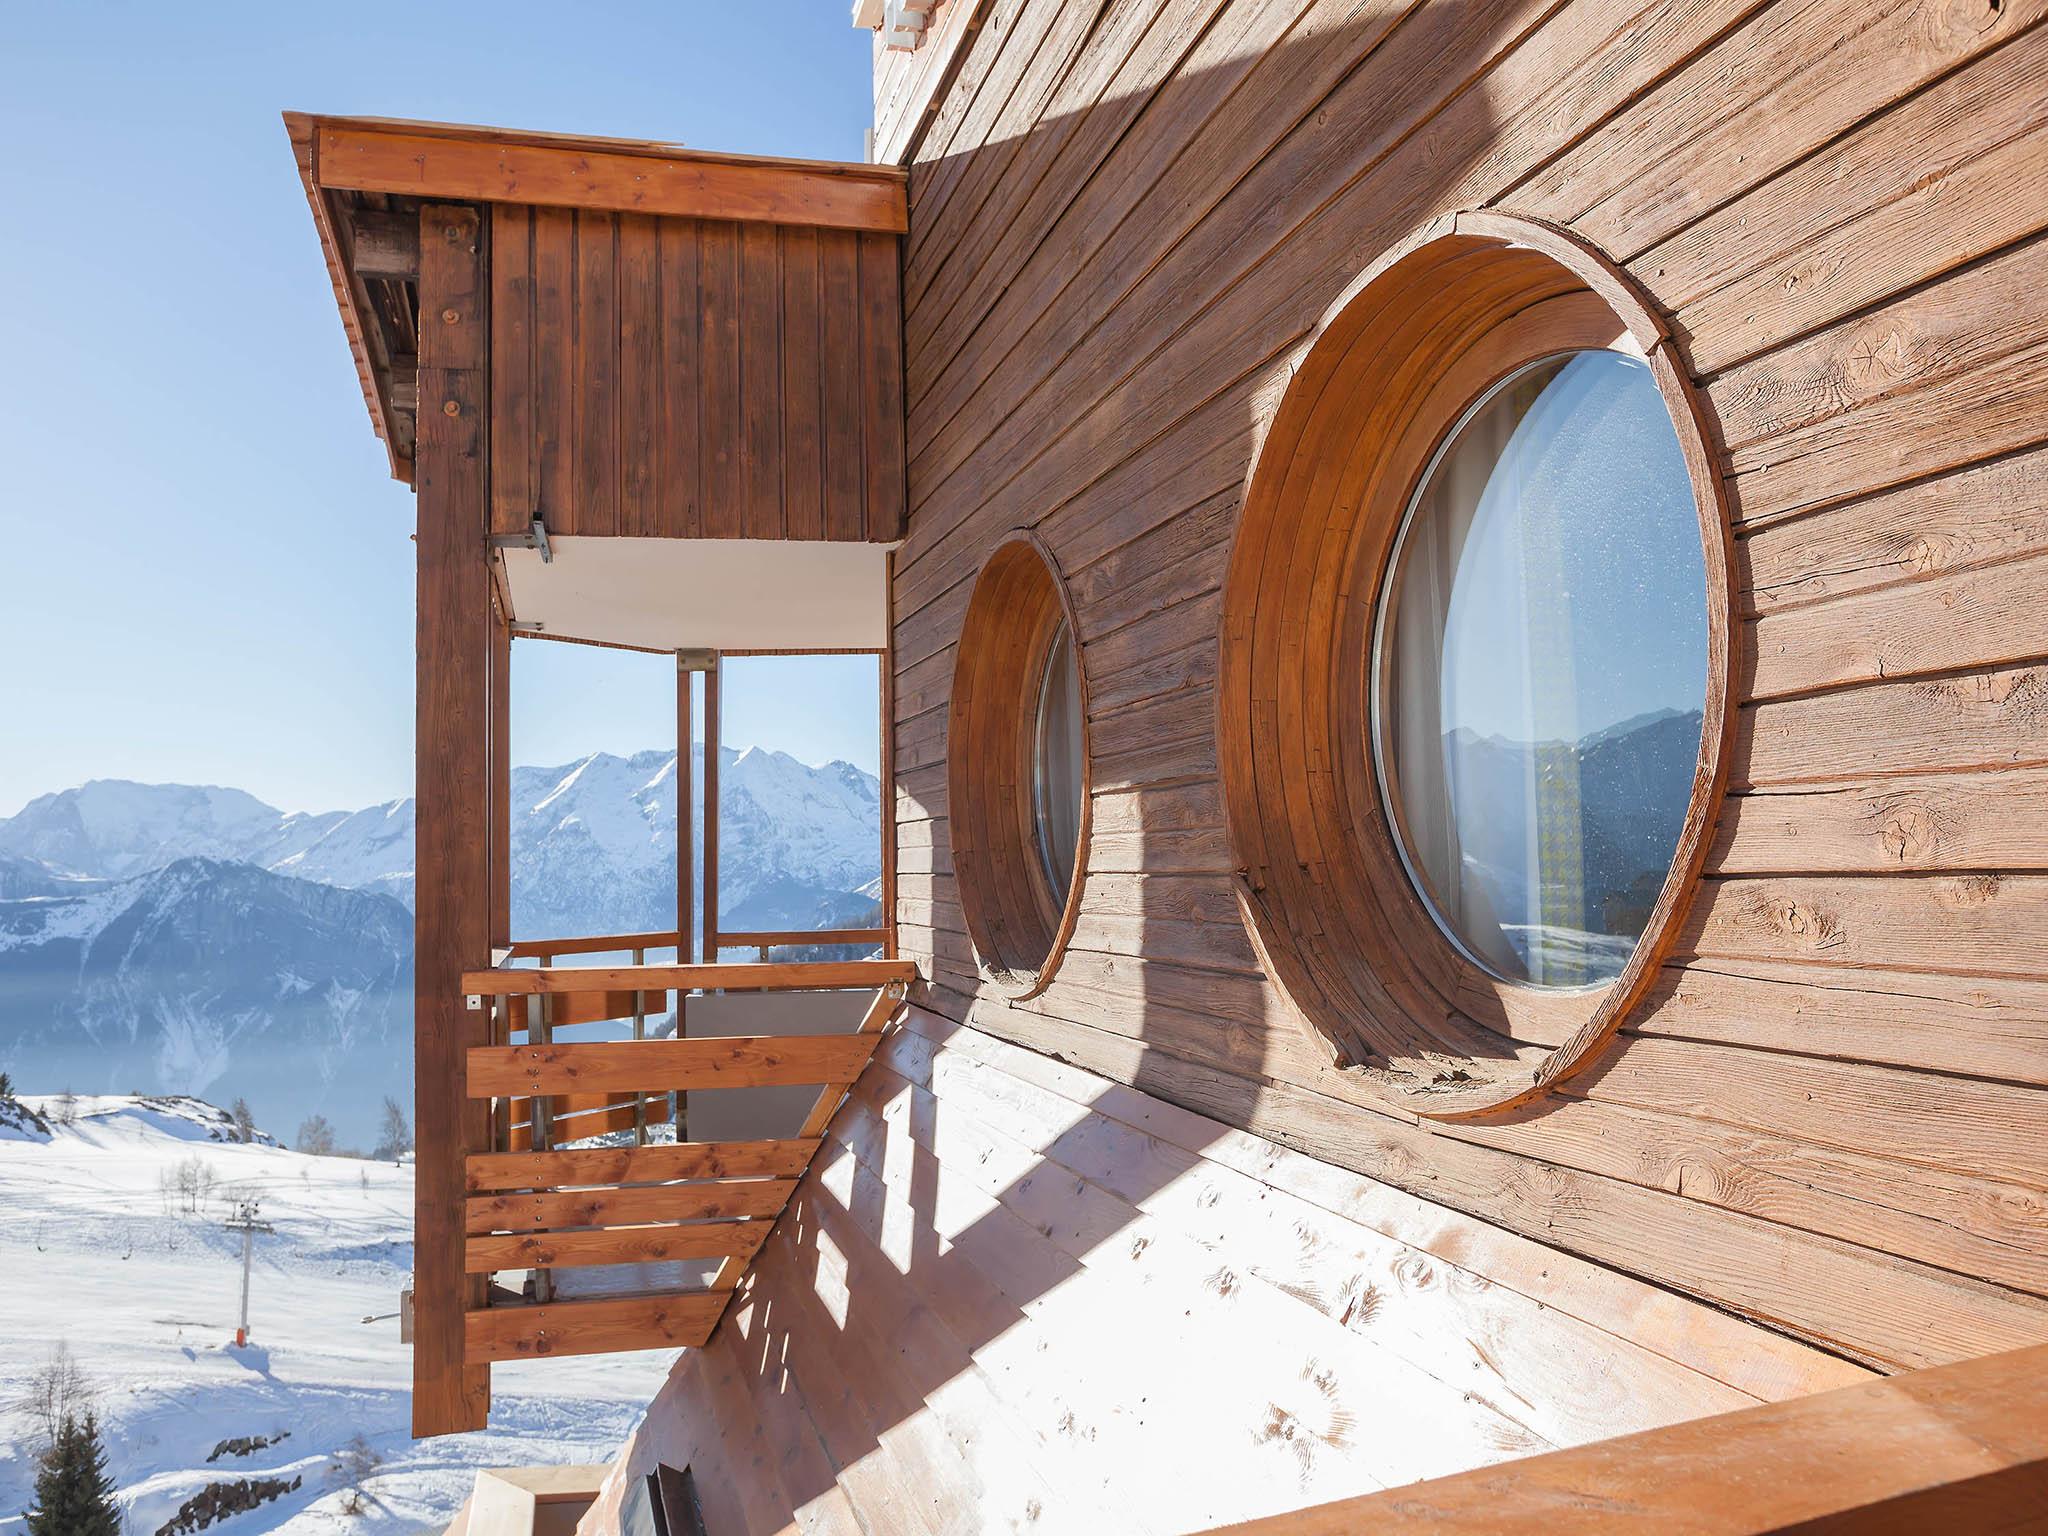 Super Hotel in ALPE D'HUEZ - Royal Ours Blanc HF89